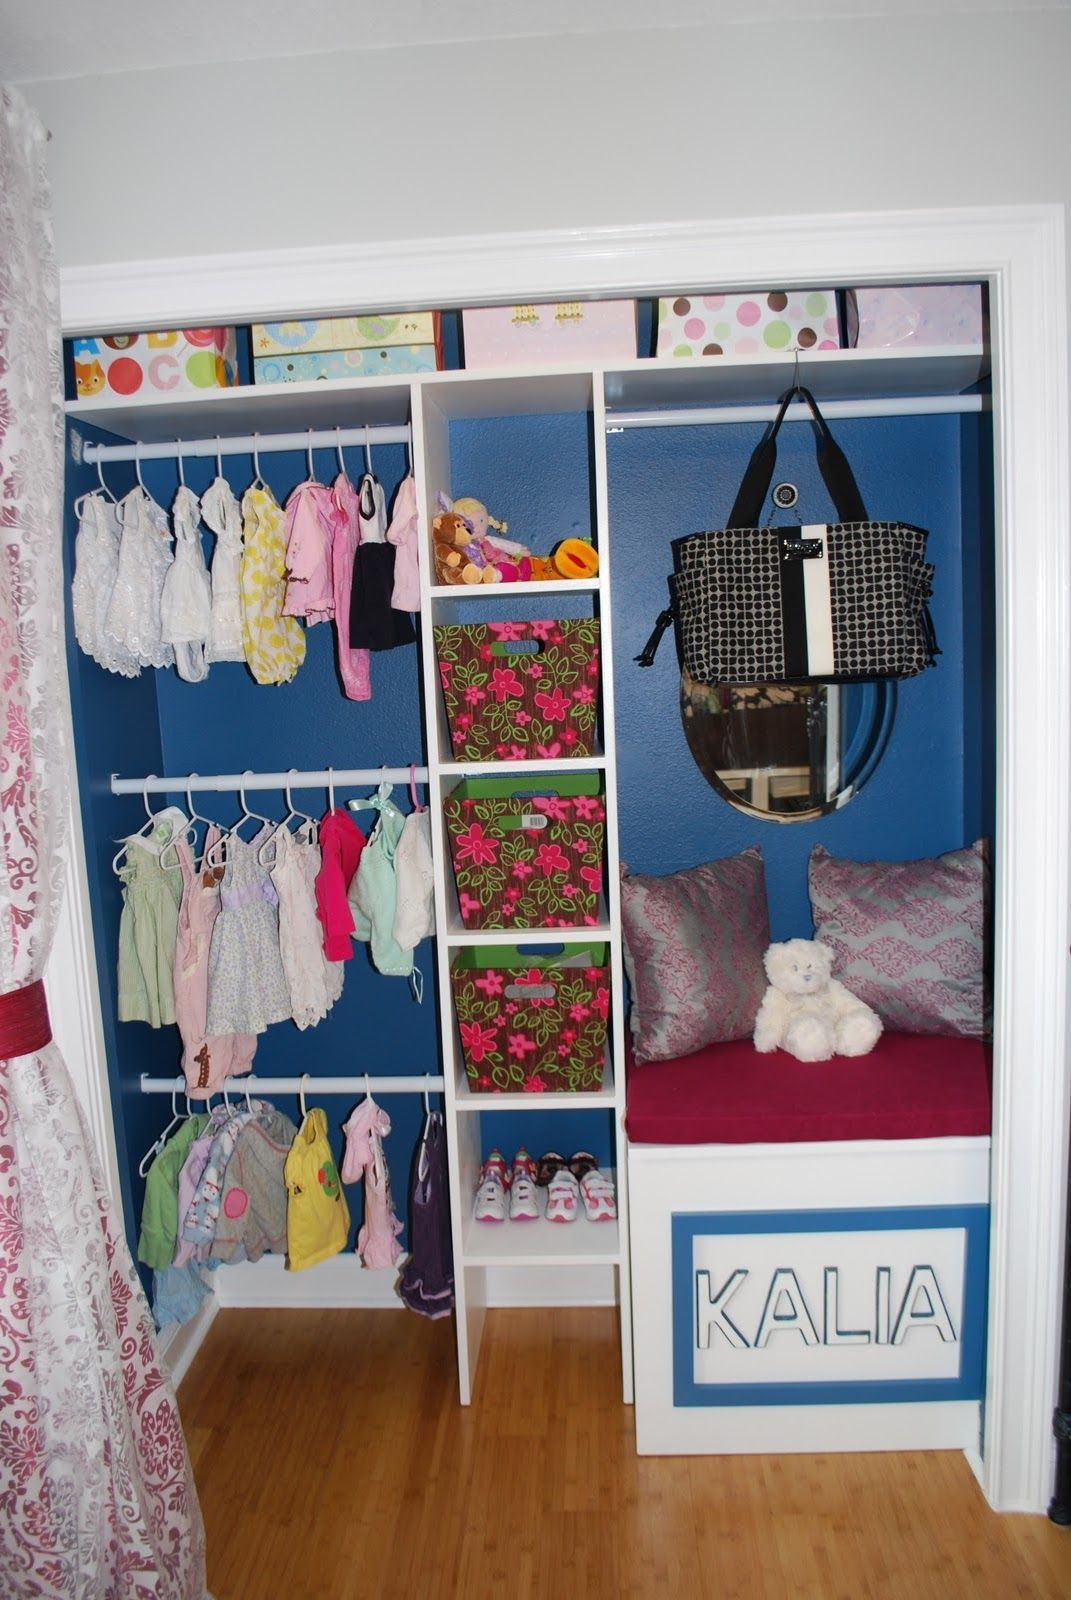 Closet Ideas For Kids. Kids Closet. Never Thought To Add Three Rods. Could